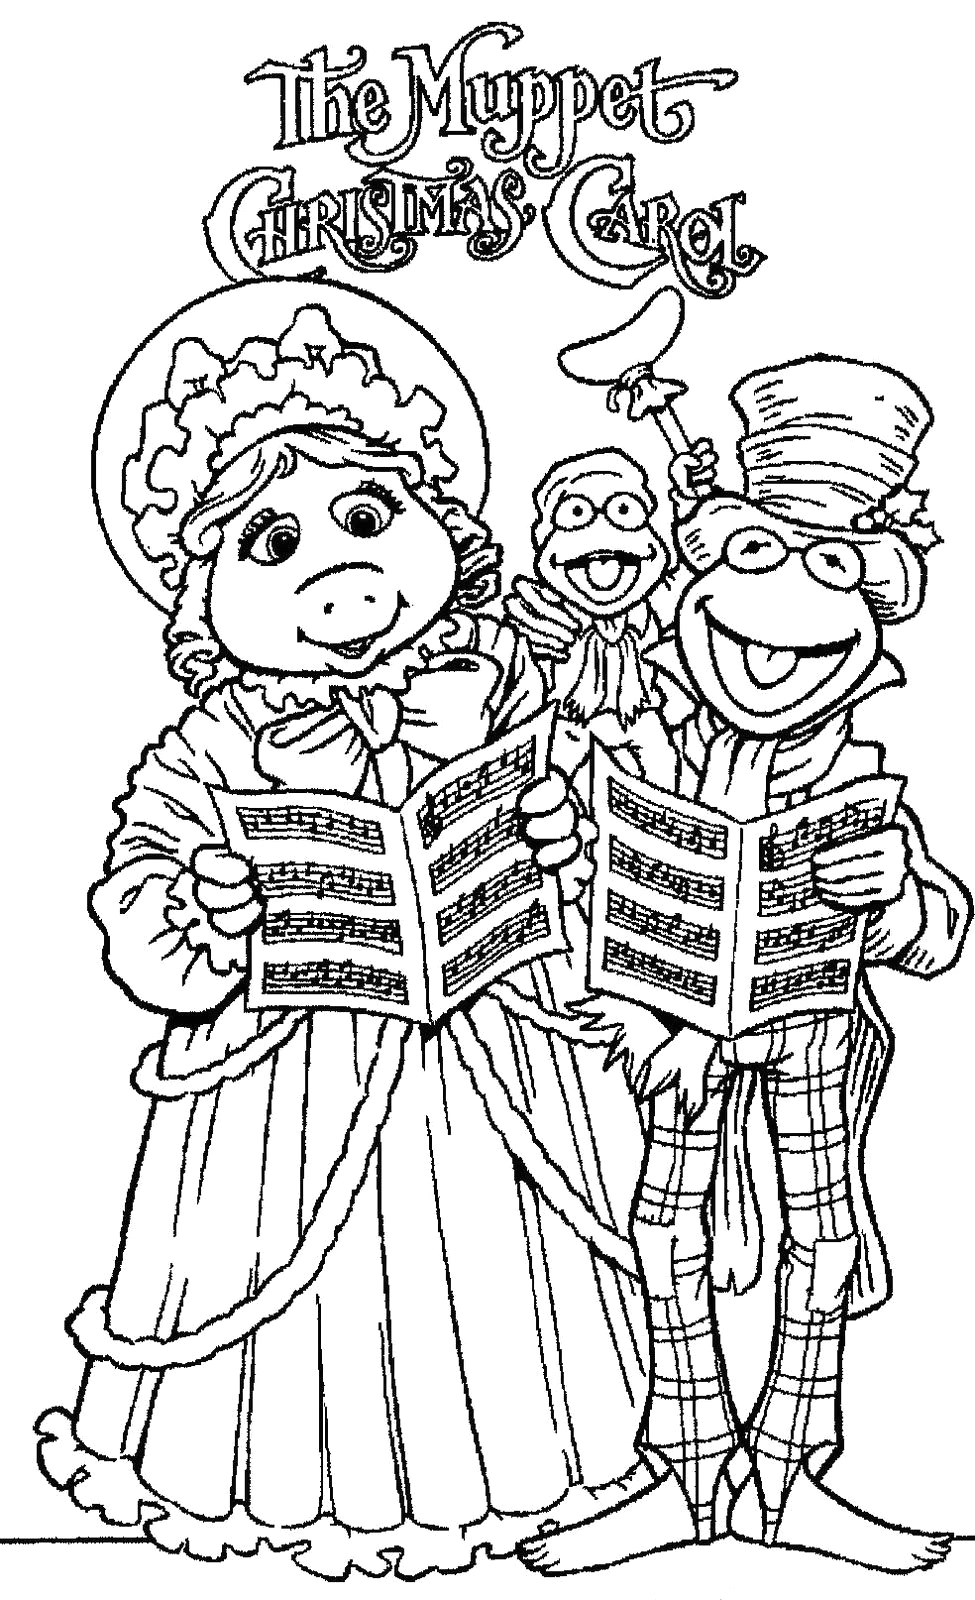 A Christmas Carol Coloring Pages to Print Christmas Movie Coloring Pages Google Search